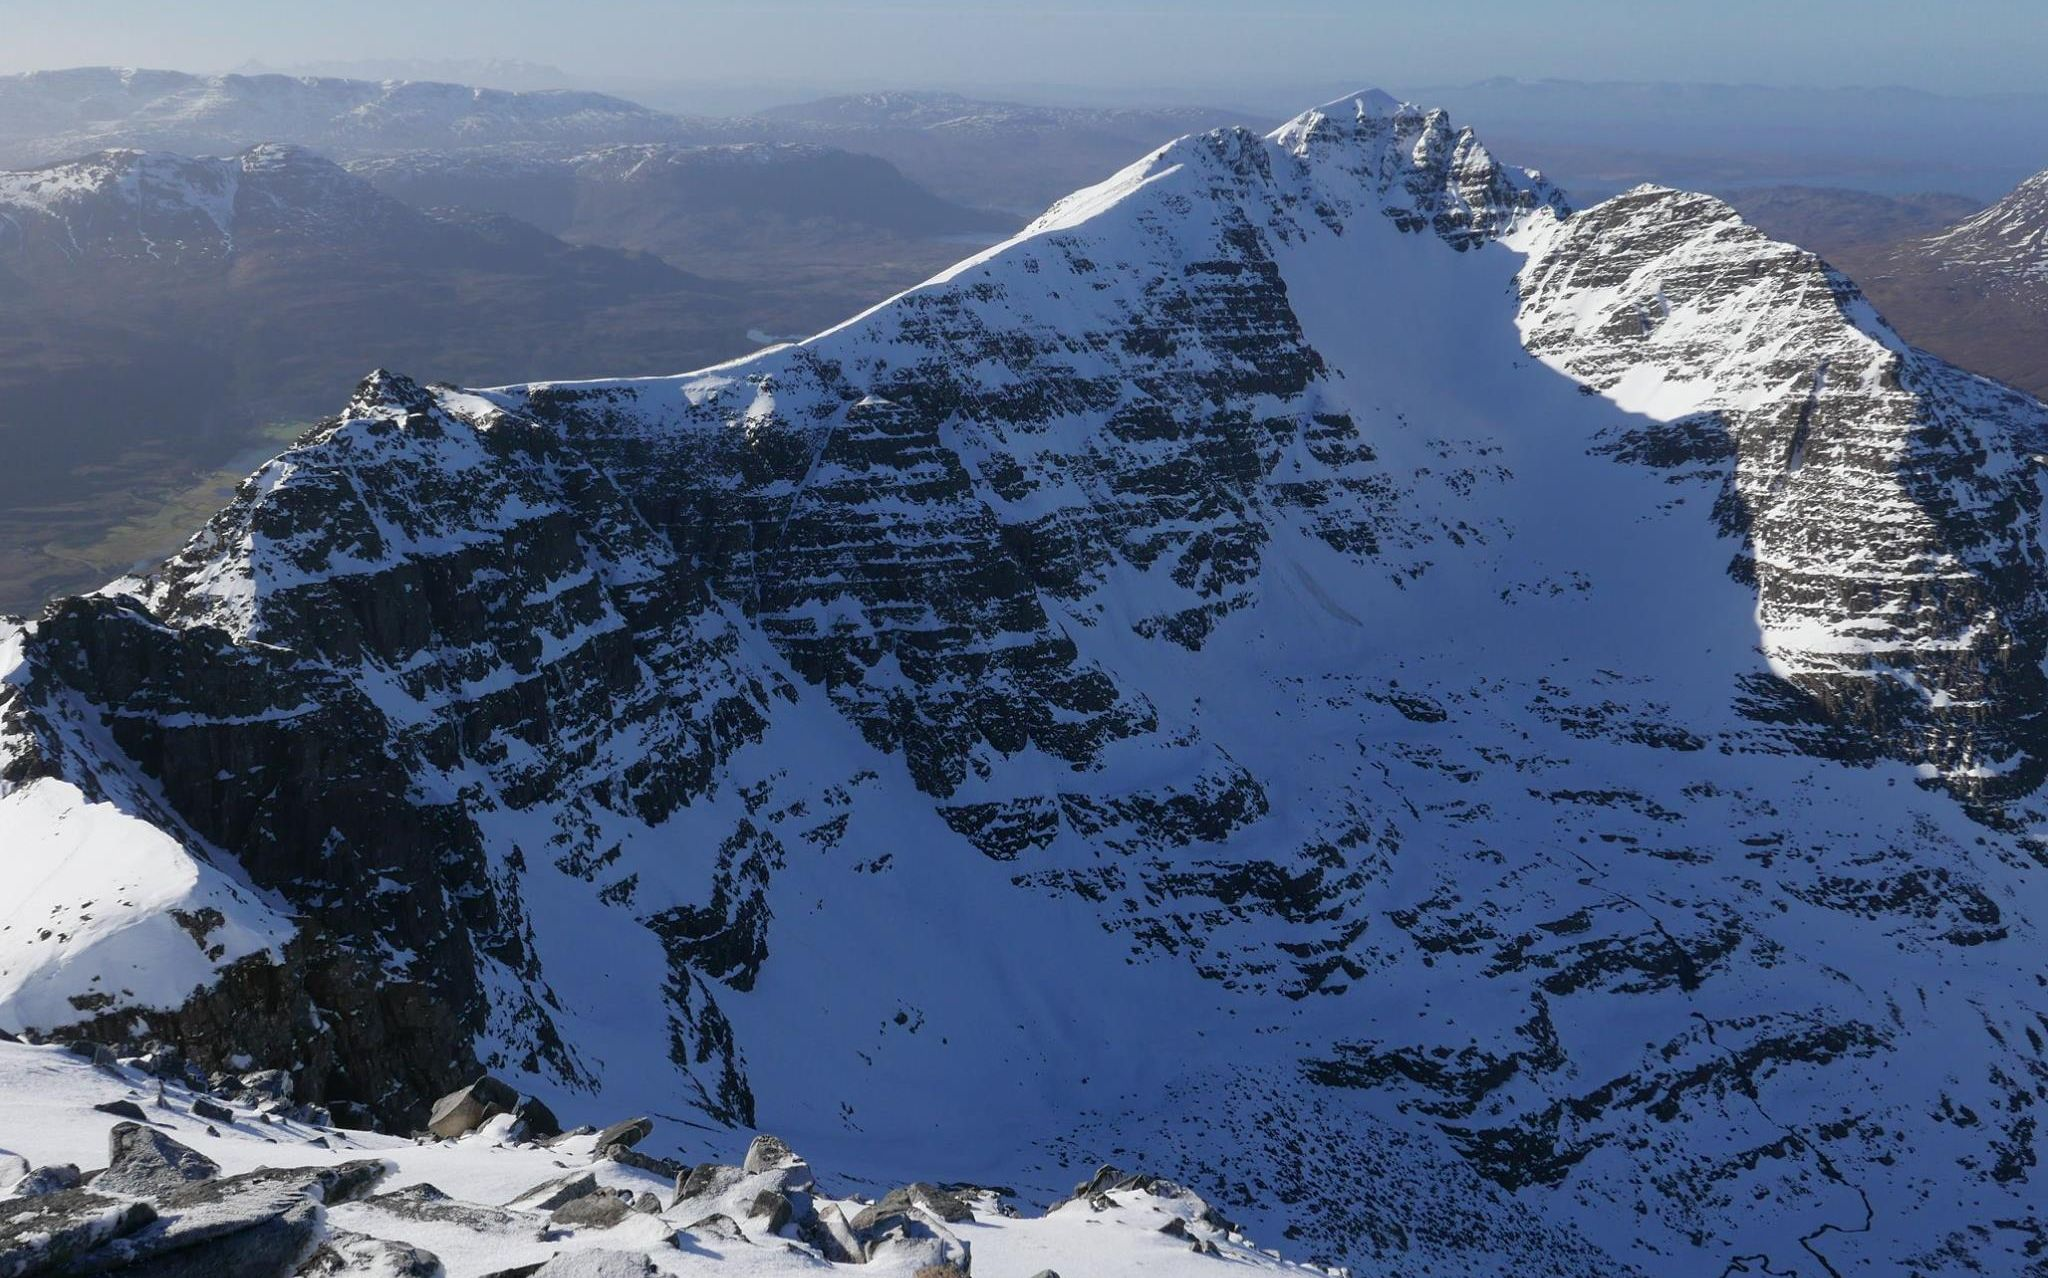 Snow-bound summit ridge of Liathach in winter in the Torridon Region of the NW Highlands of Scotland